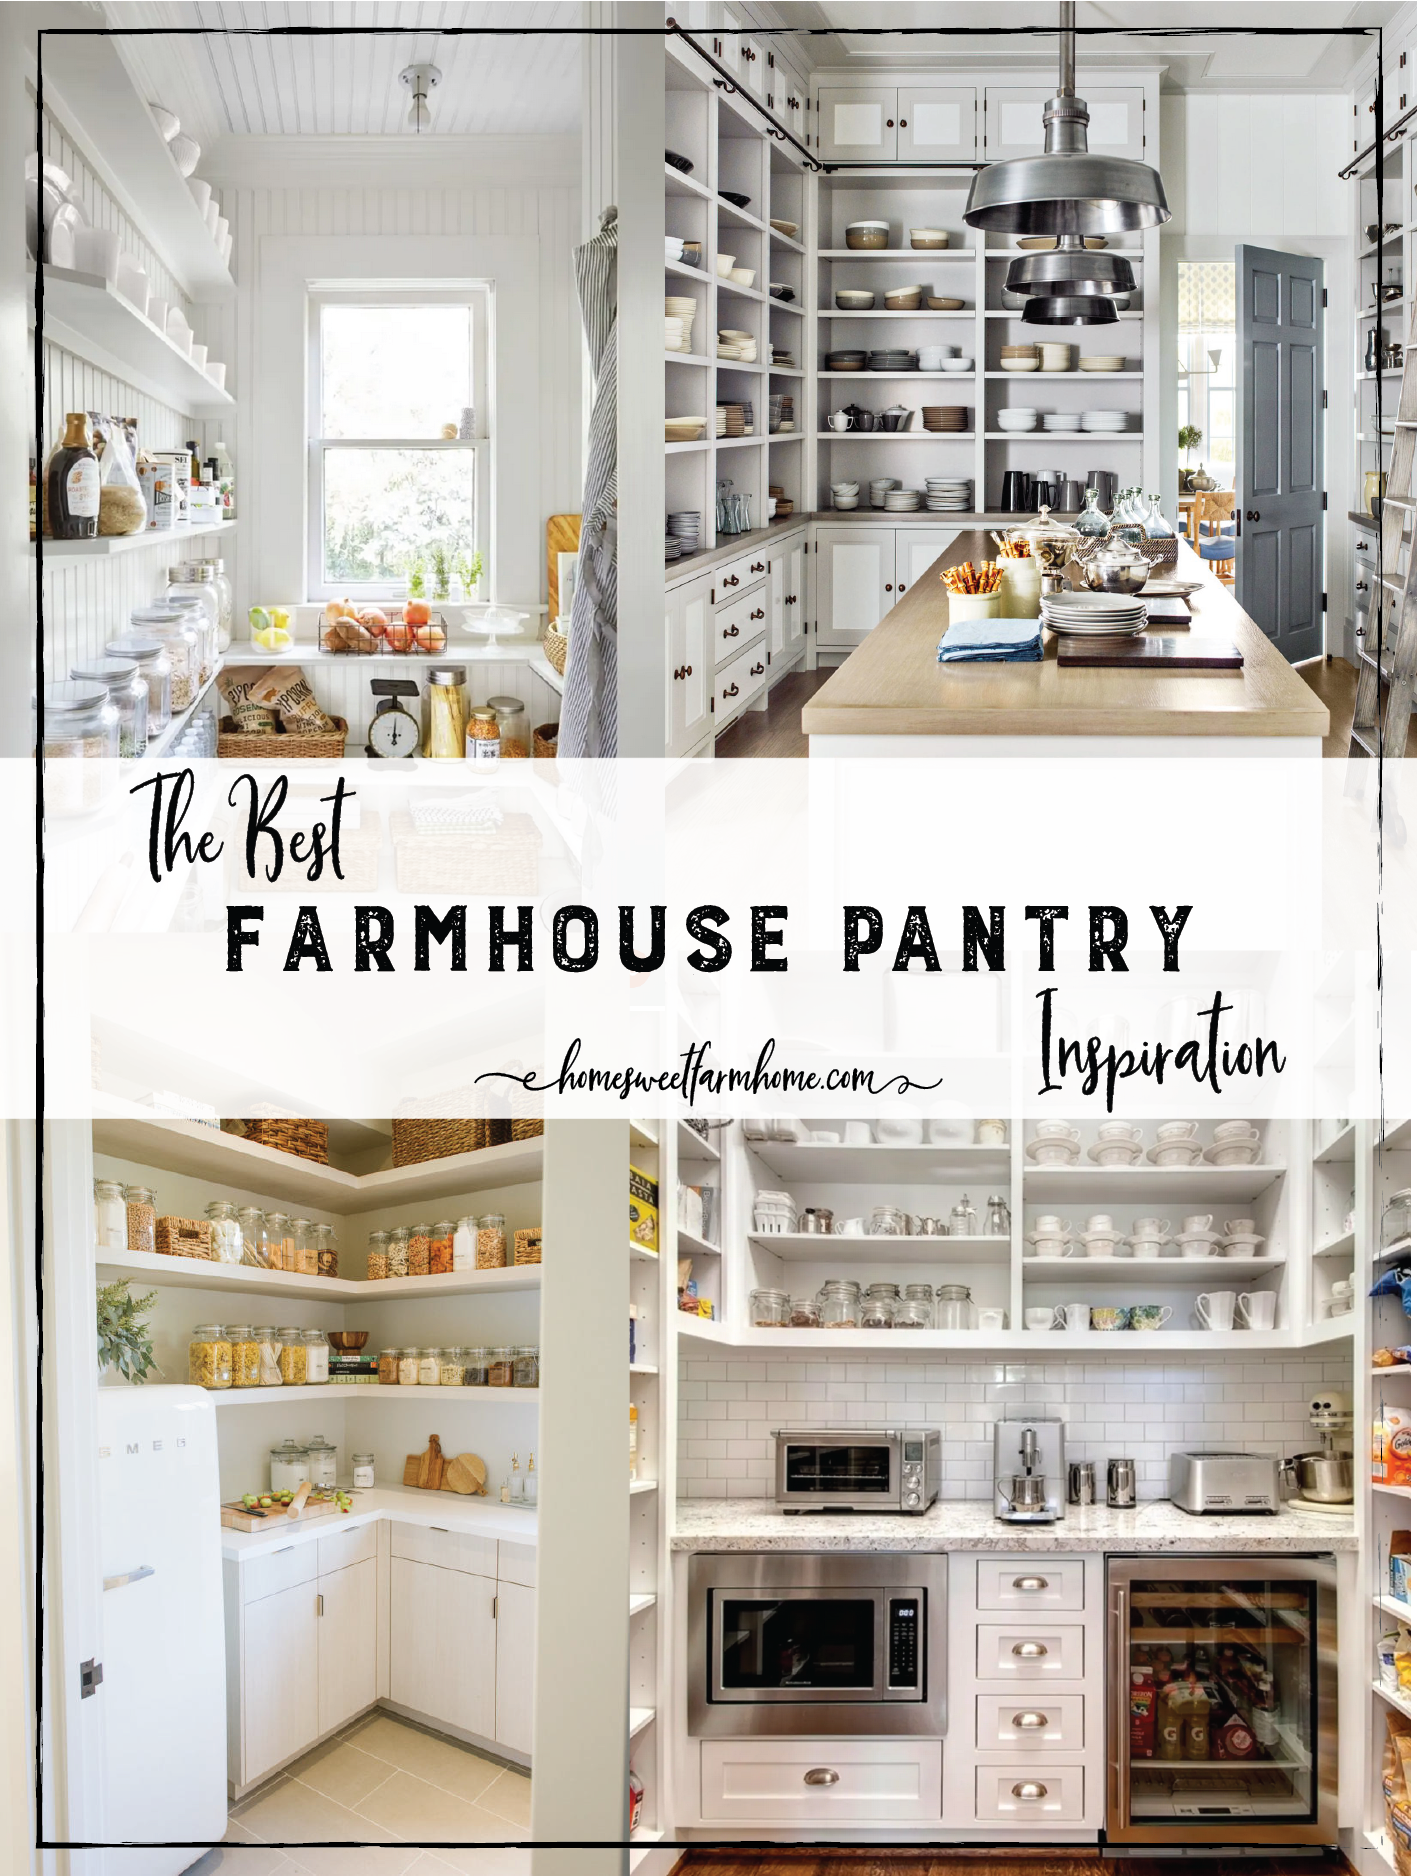 The Best Farmhouse Pantry Inspiration